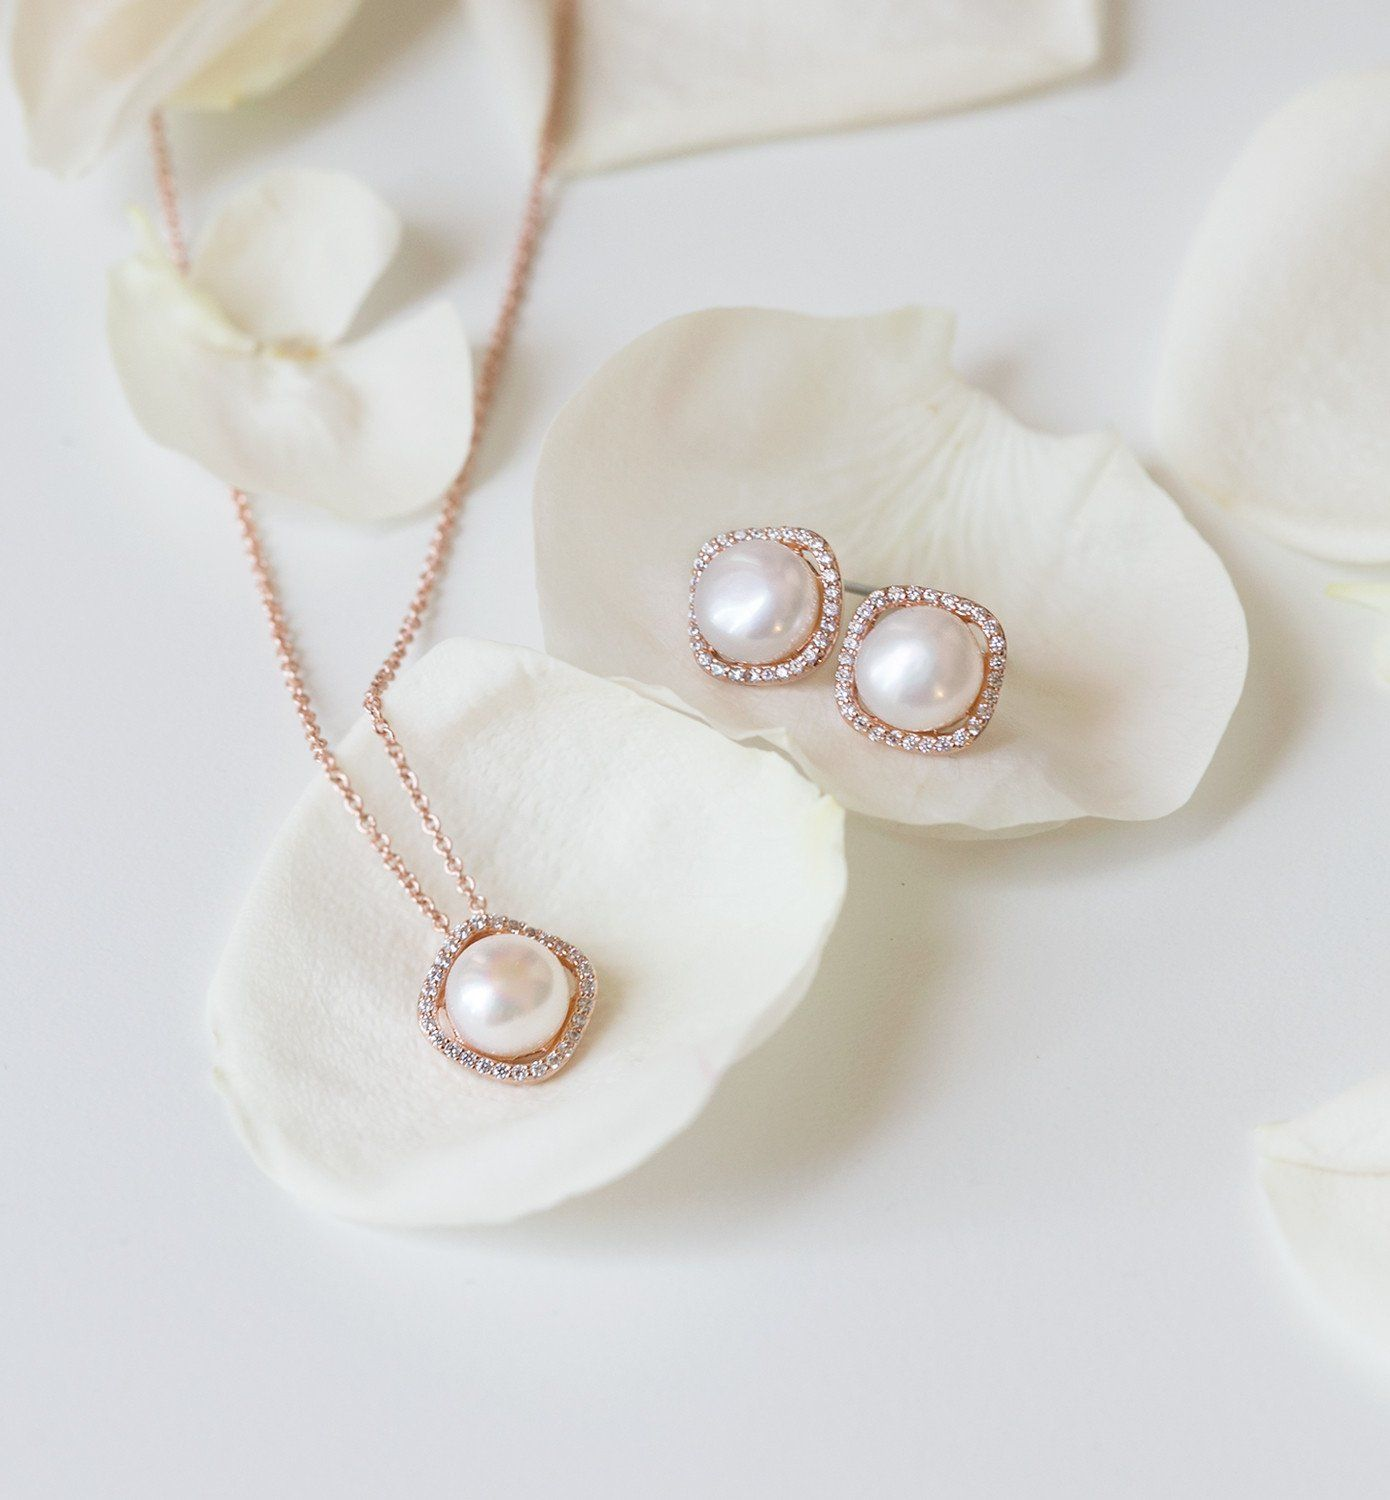 abfcbe3db Shop our rose gold bridal jewelry & wedding rose gold jewelry sets from Amy  O. Bridal. Browse more of our collection of wedding jewelry & bridal jewelry .